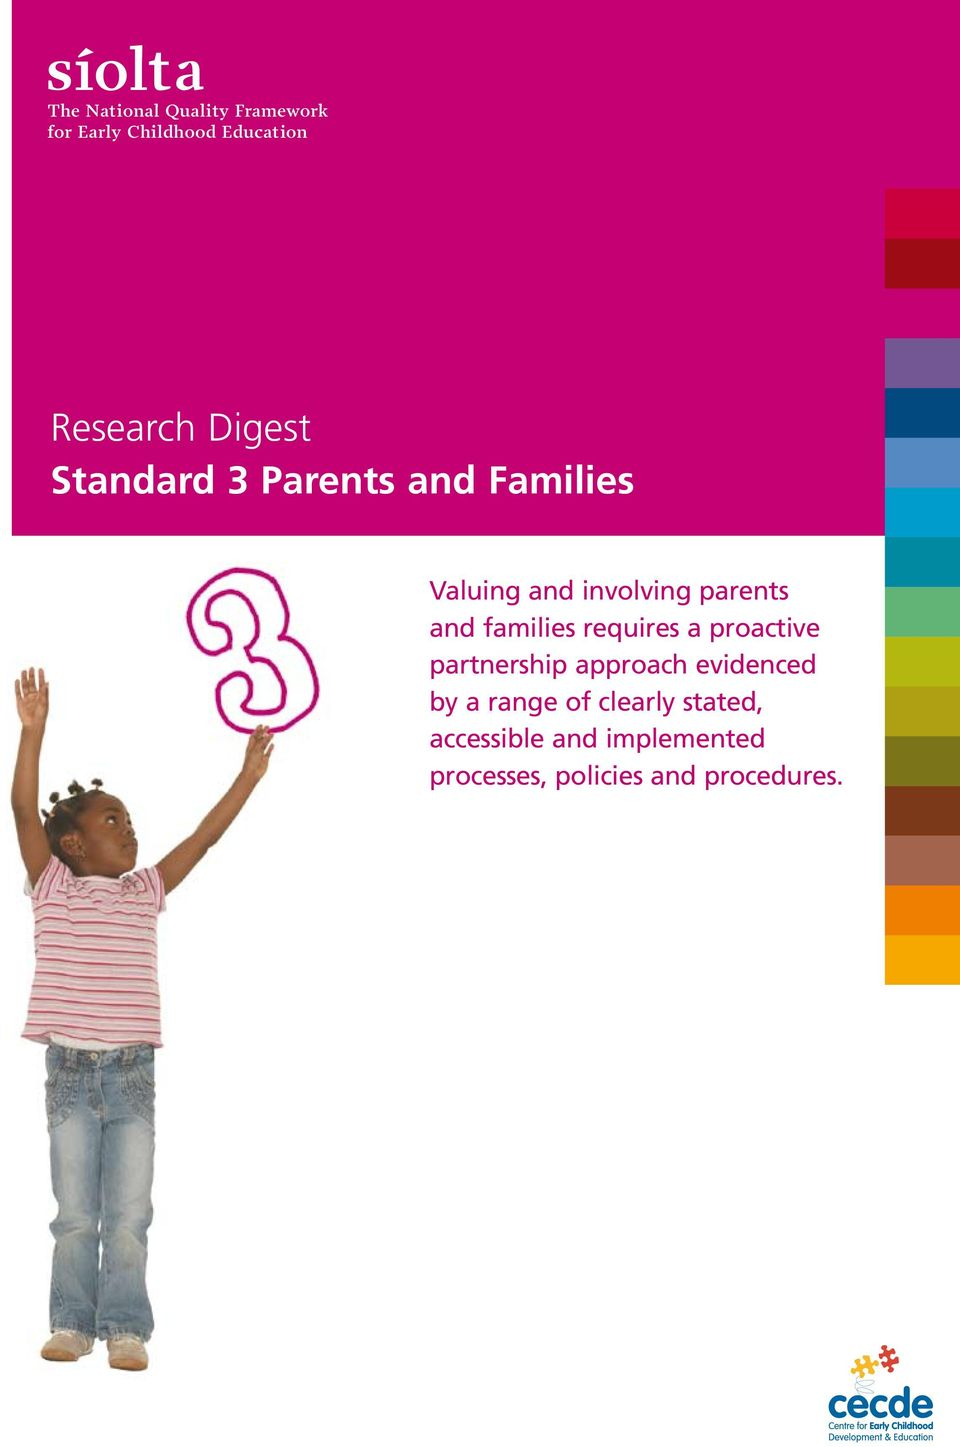 parents and families requires a proactive partnership approach evidenced by